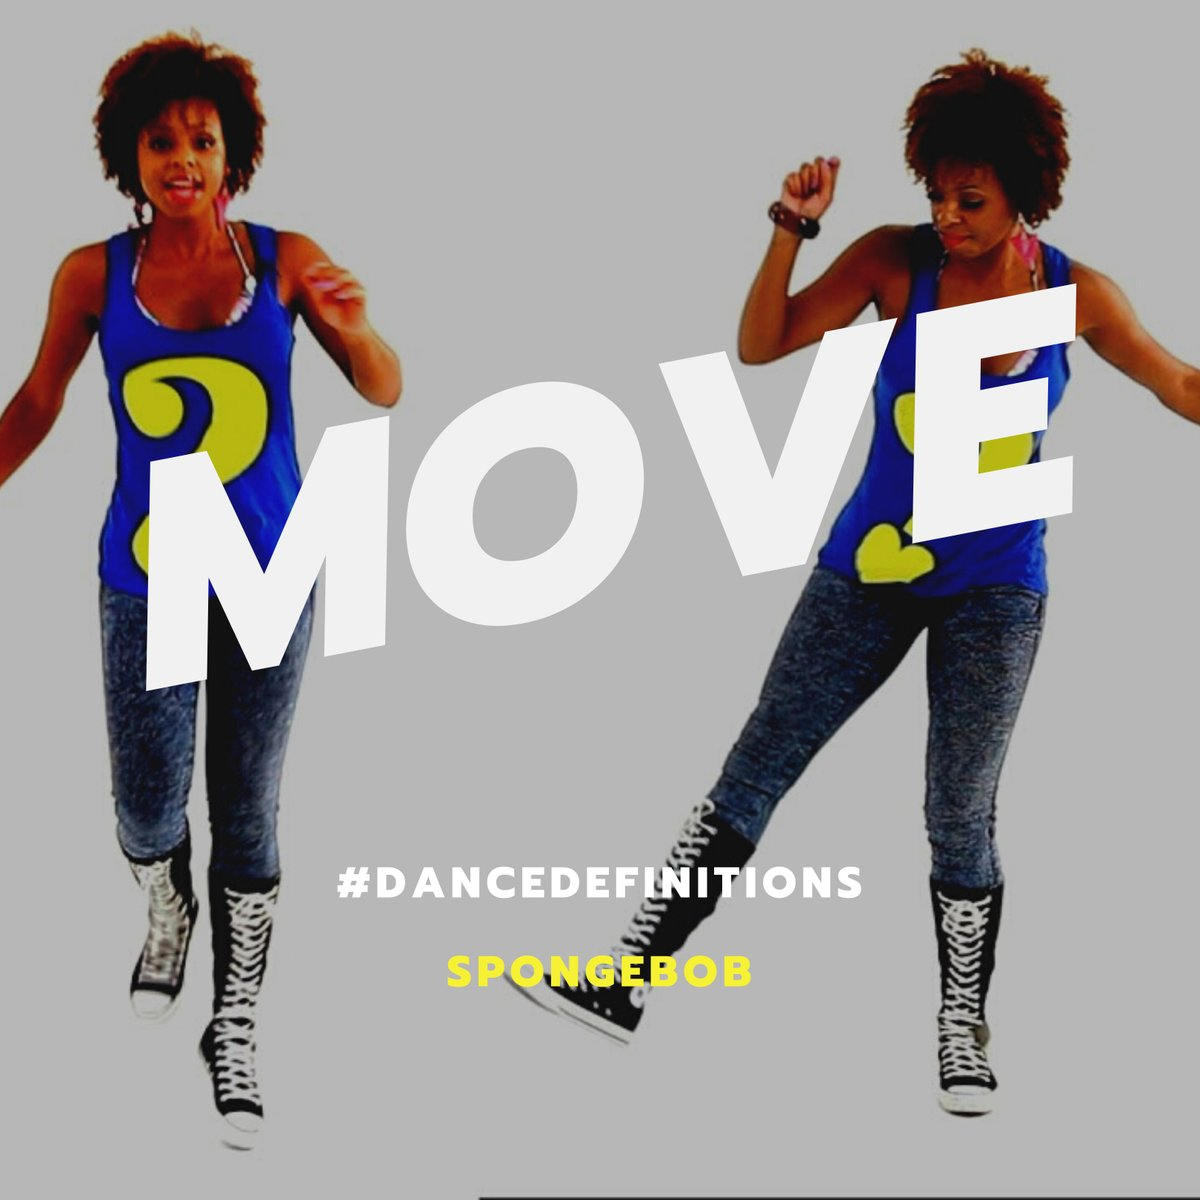 Our next #DanceDefinition is The Spongebob. Despite the name, the spongebob dance is not related to the character SpongeBob SquarePants.   Watch the tutorial on how to do this dance move here:  https://t.co/eZBvCT59Qf  #MoveDanceCompany #Dance #Dancing #Dancer  #Modern #Hiphop https://t.co/TYgWDBCH2T